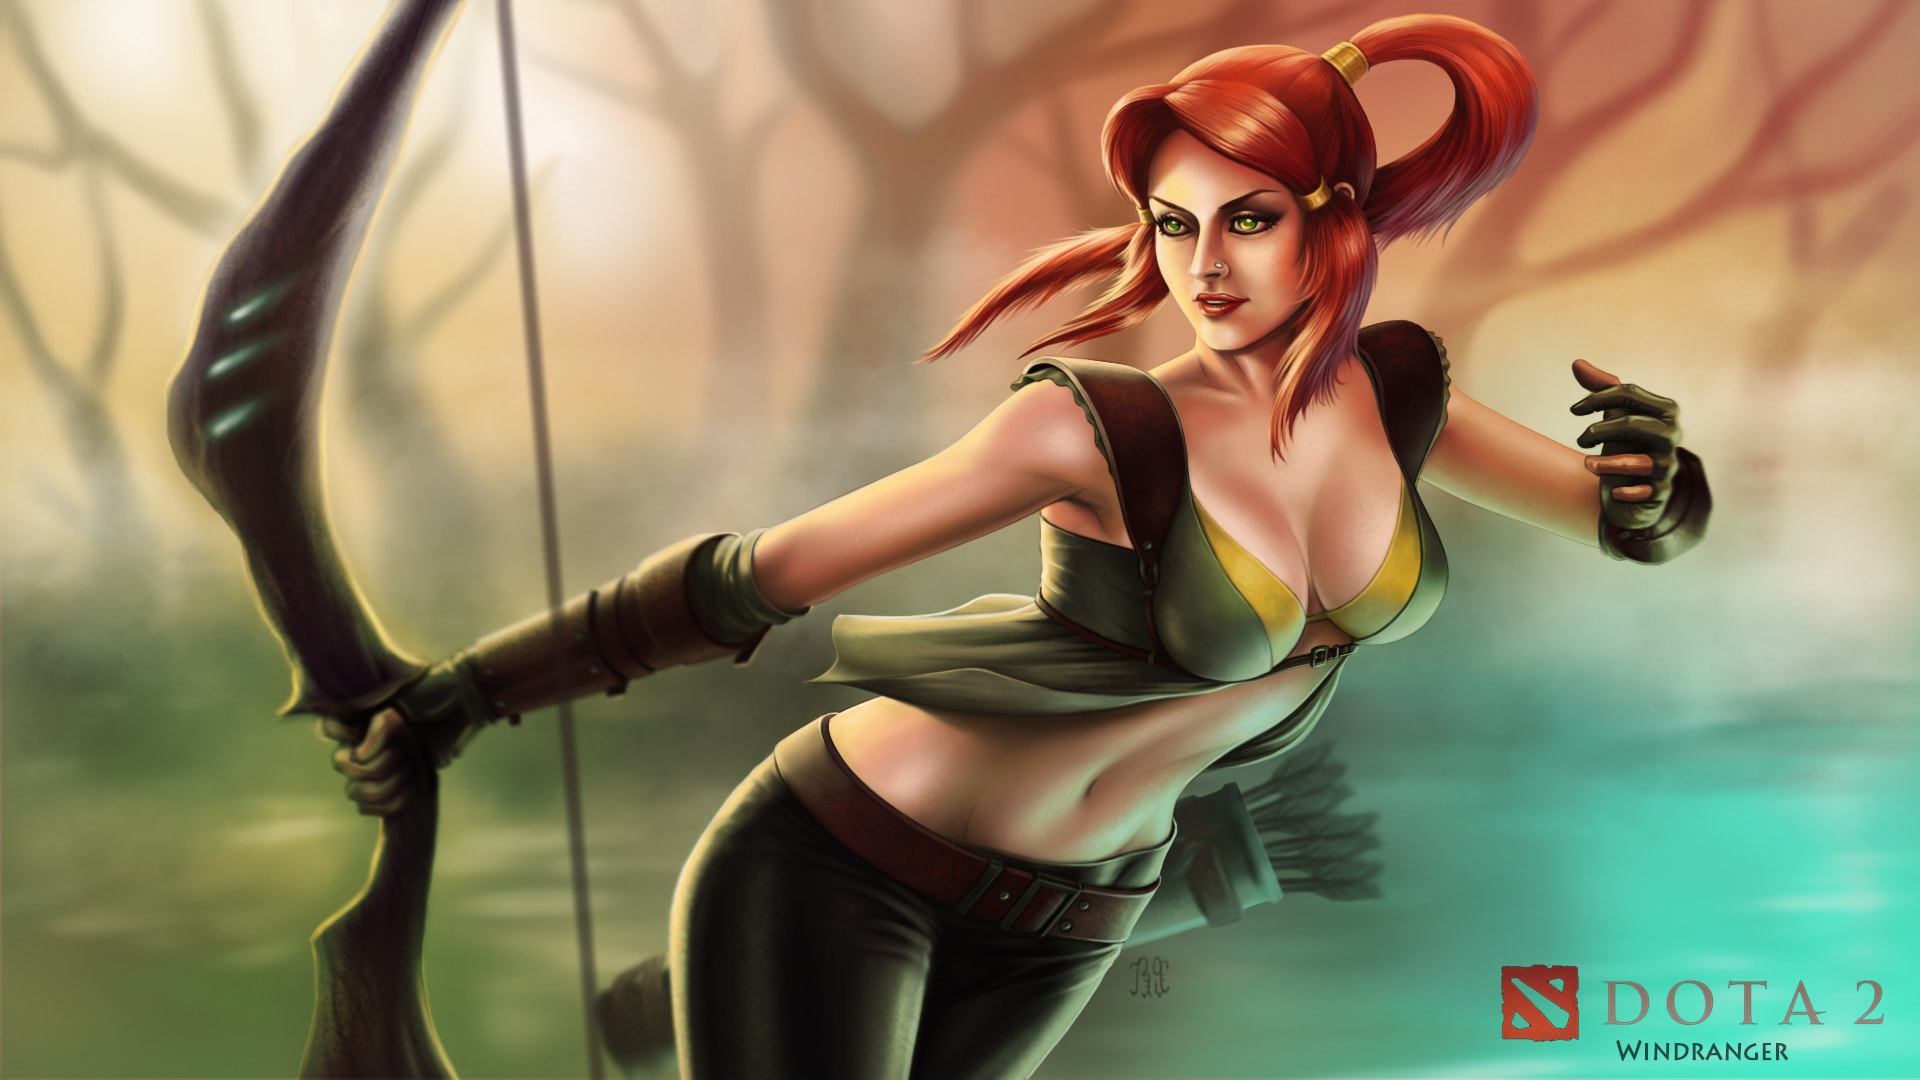 Dota2 : Windranger widescreen